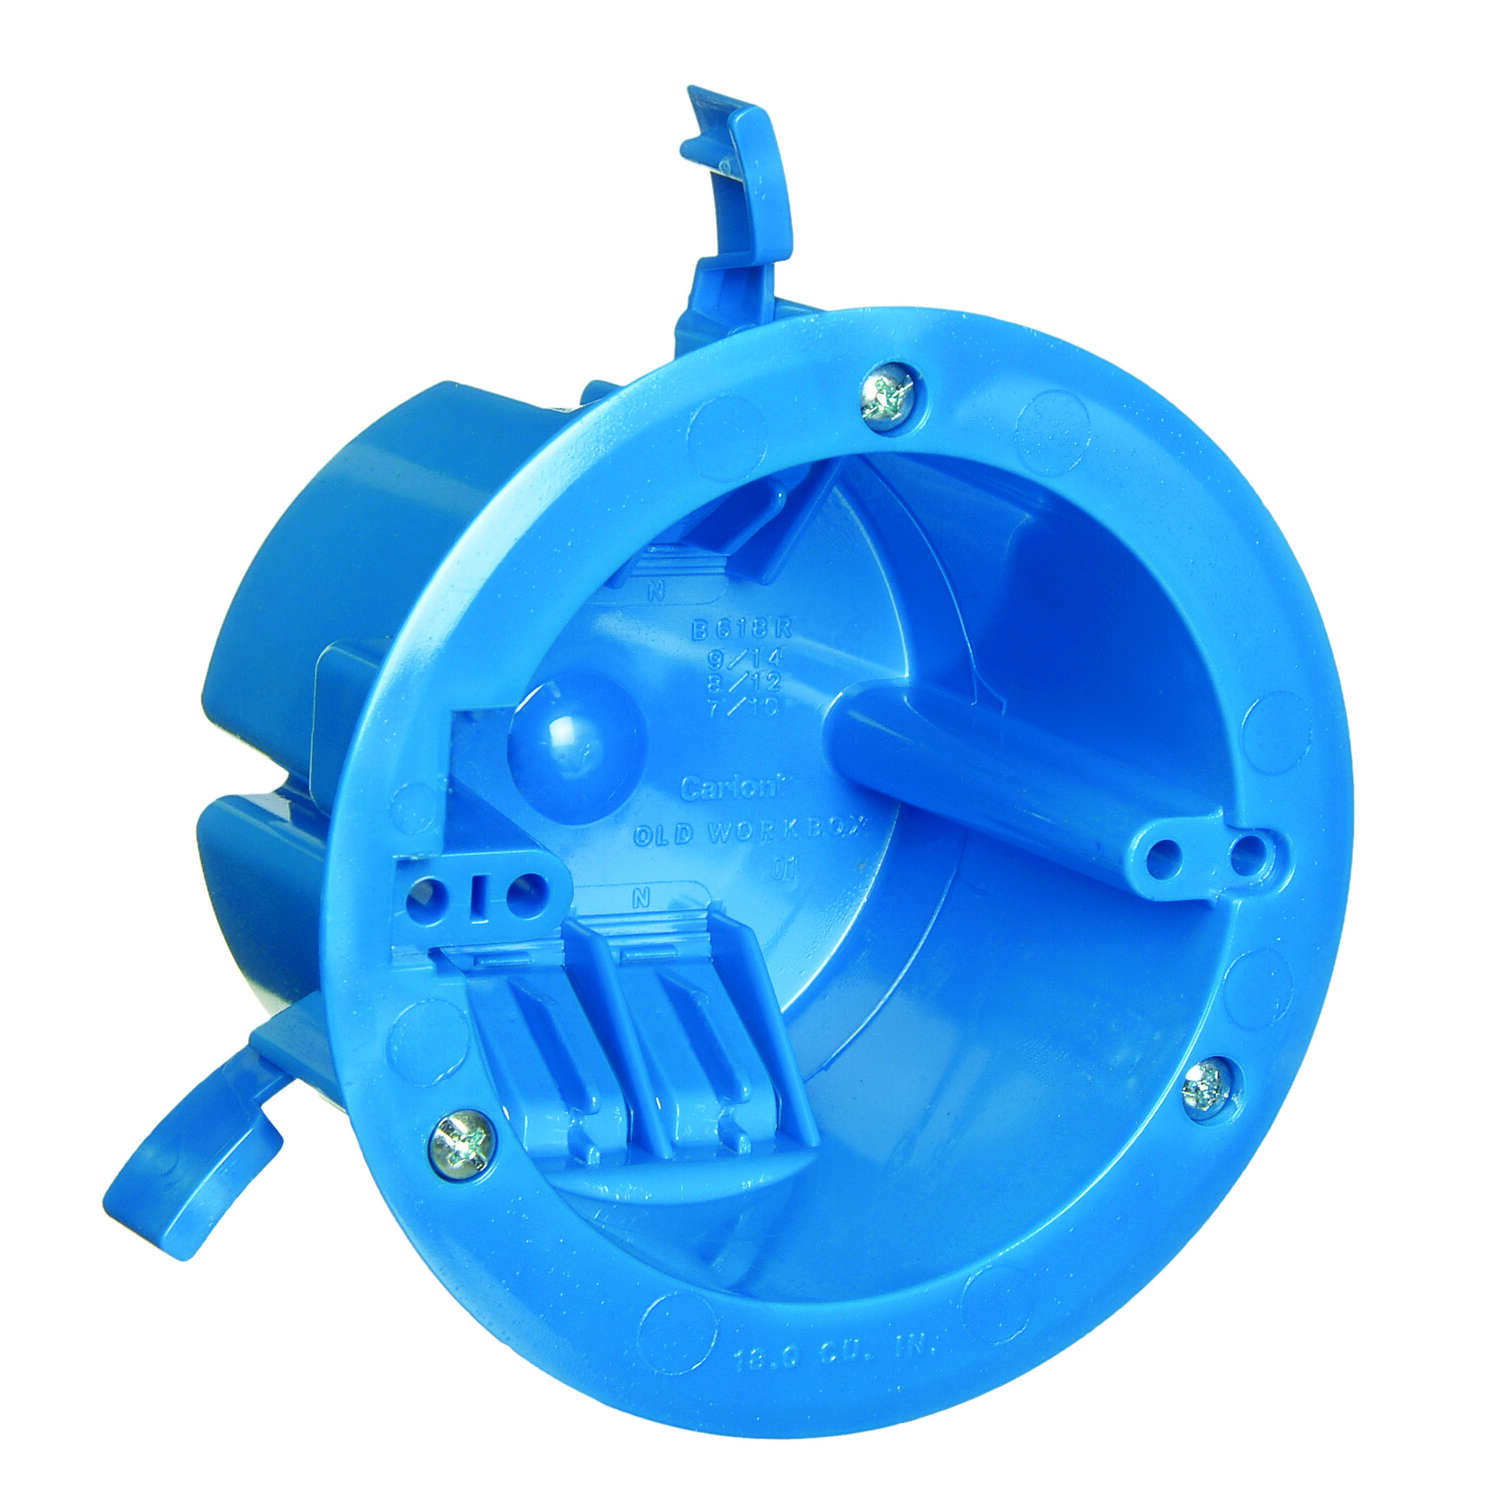 Carlon  2-11/16 in. Round  PVC  Electrical Ceiling Box  Blue  1 Gang